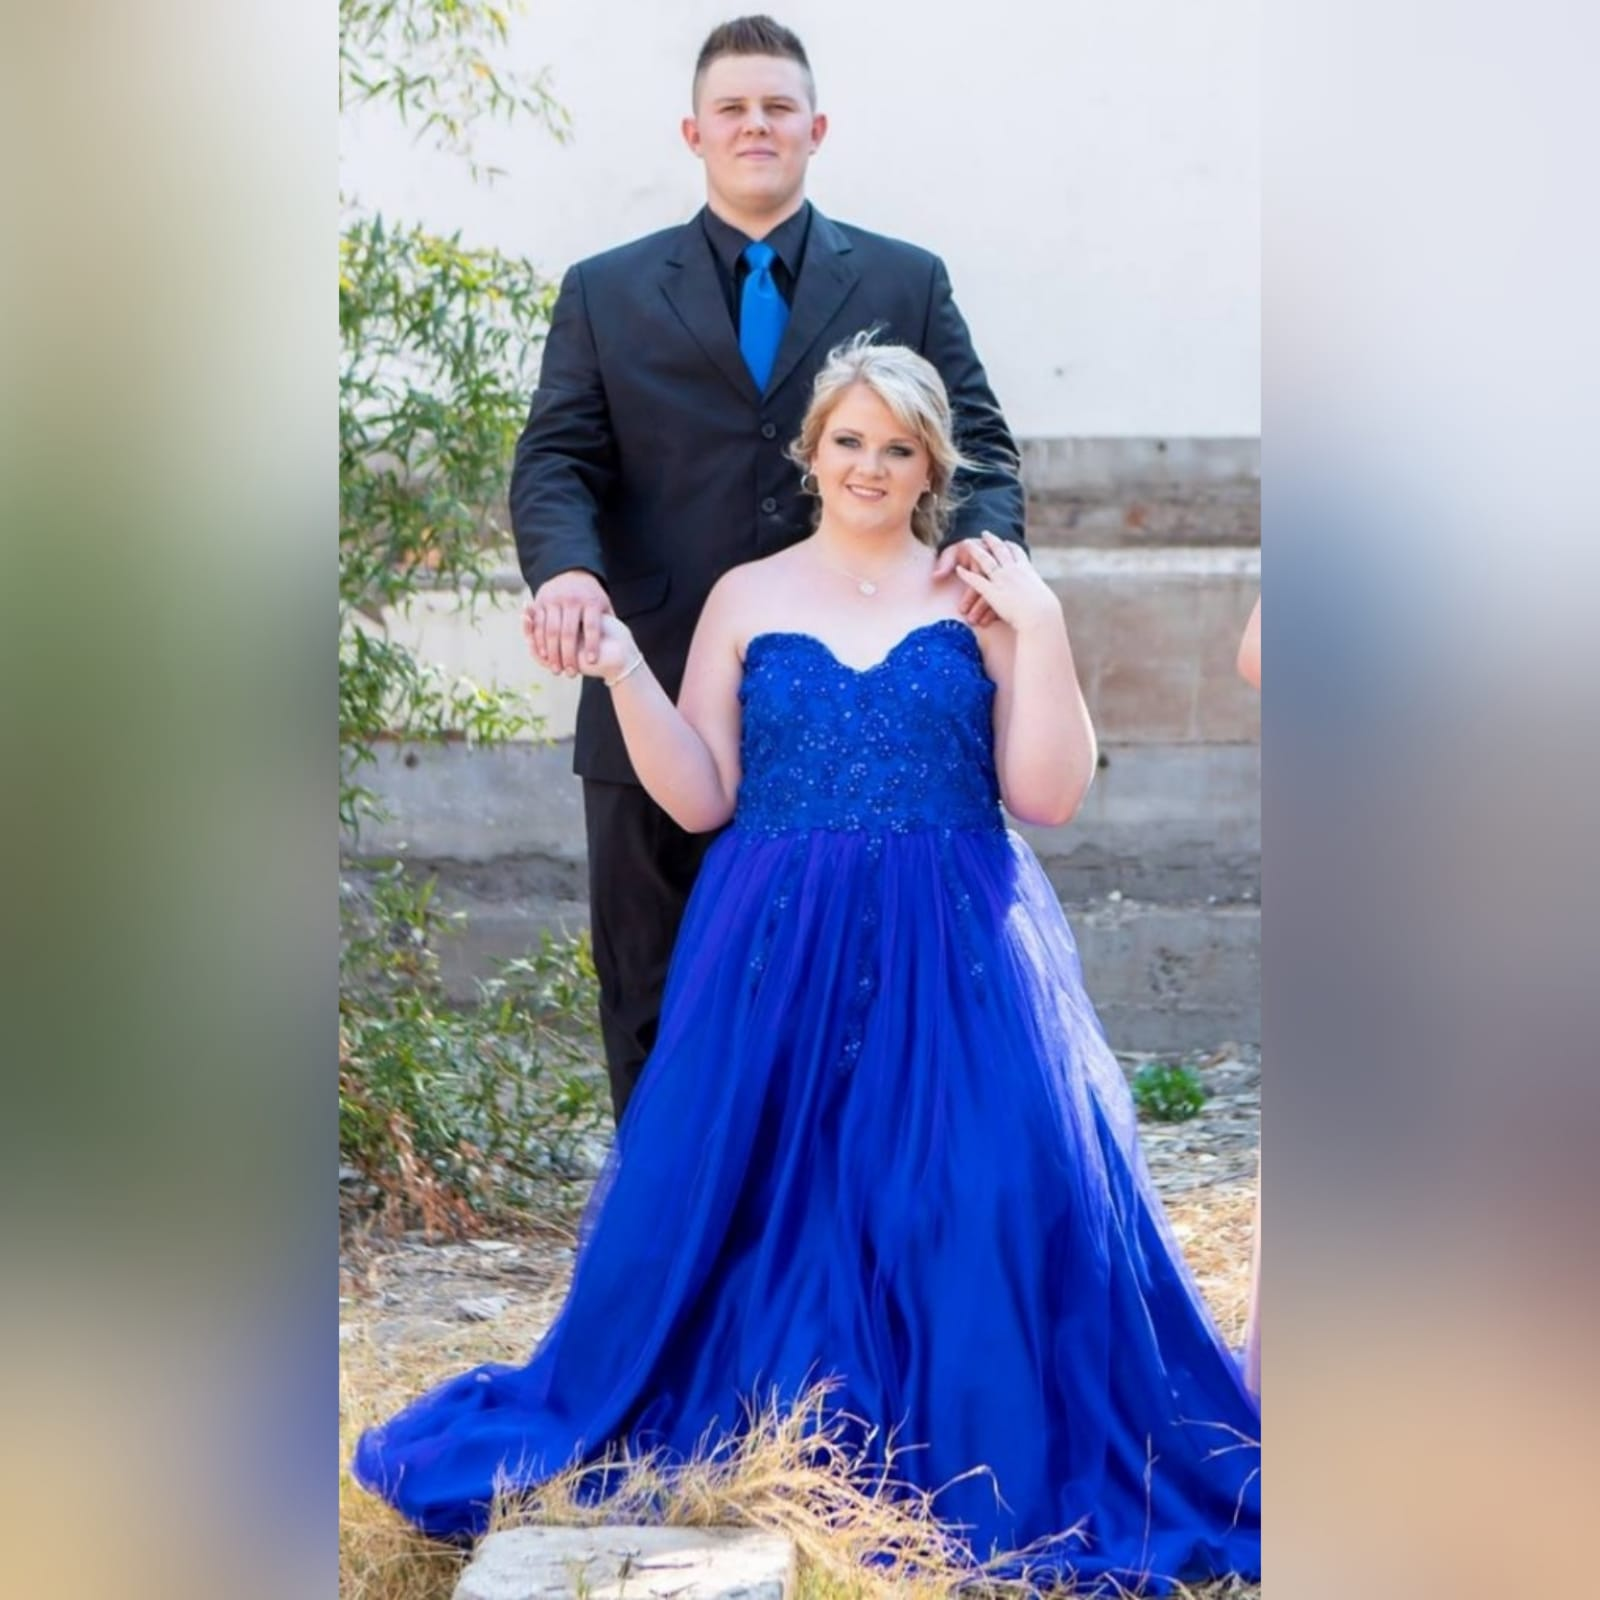 Royal blue boobtube tulle prom dress 5 royal blue boobtube tulle prom dress. Bodice with a sweetheart neckline and detailed with beaded lace falling onto the tulle skirt.